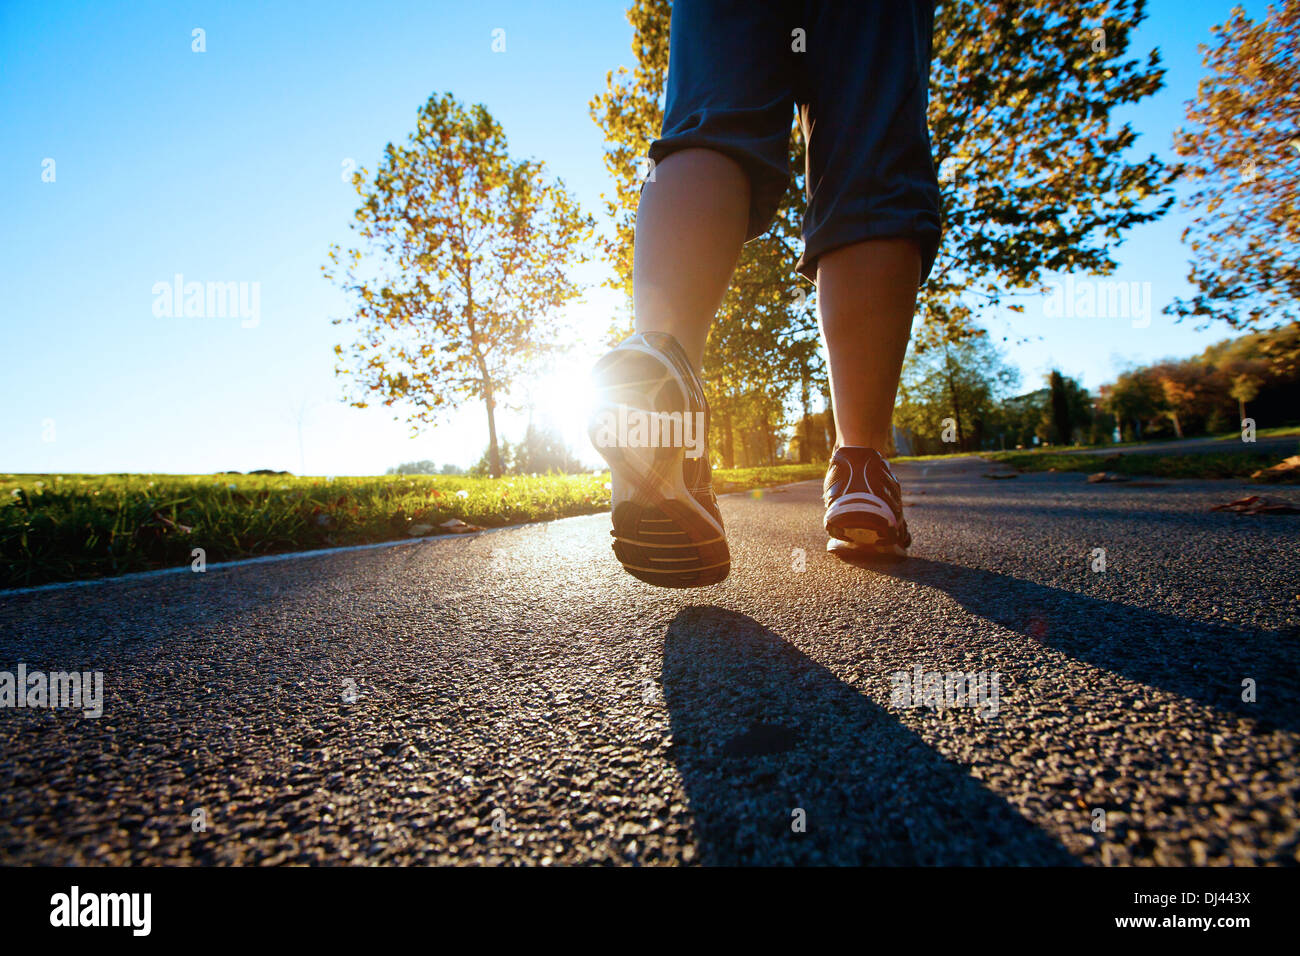 sport background, runner feet on road closeup - Stock Image